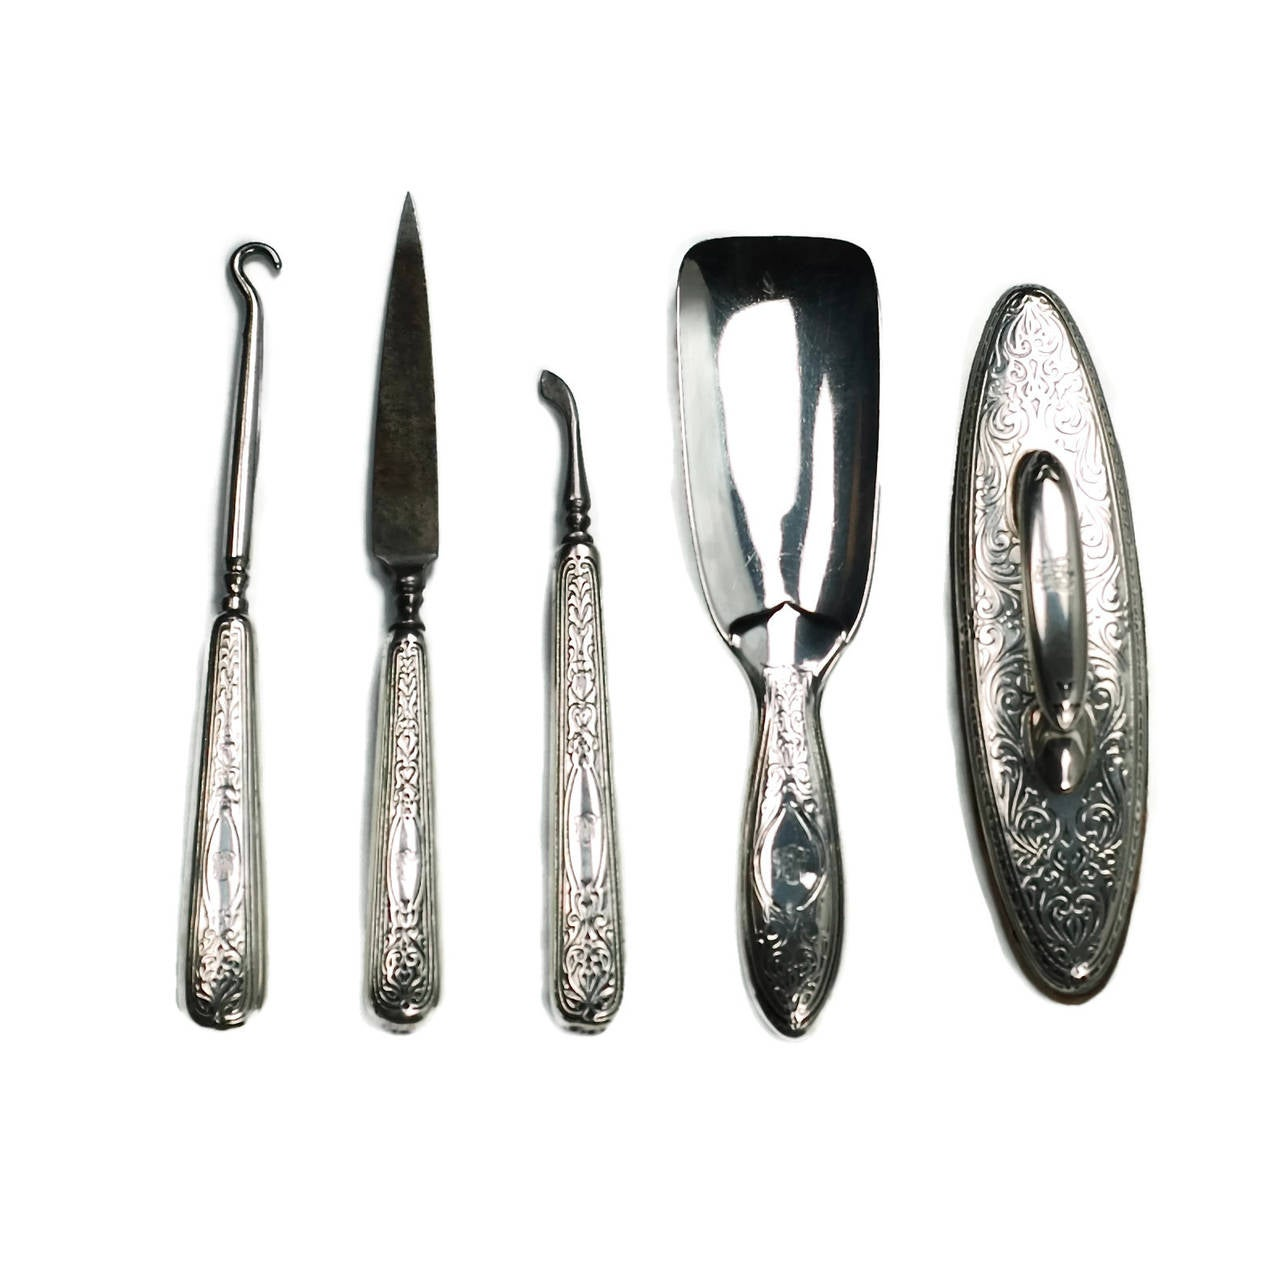 20th Century Edwardian Tiffany & Co. Sterling Silver 13-Piece Vanity Set For Sale